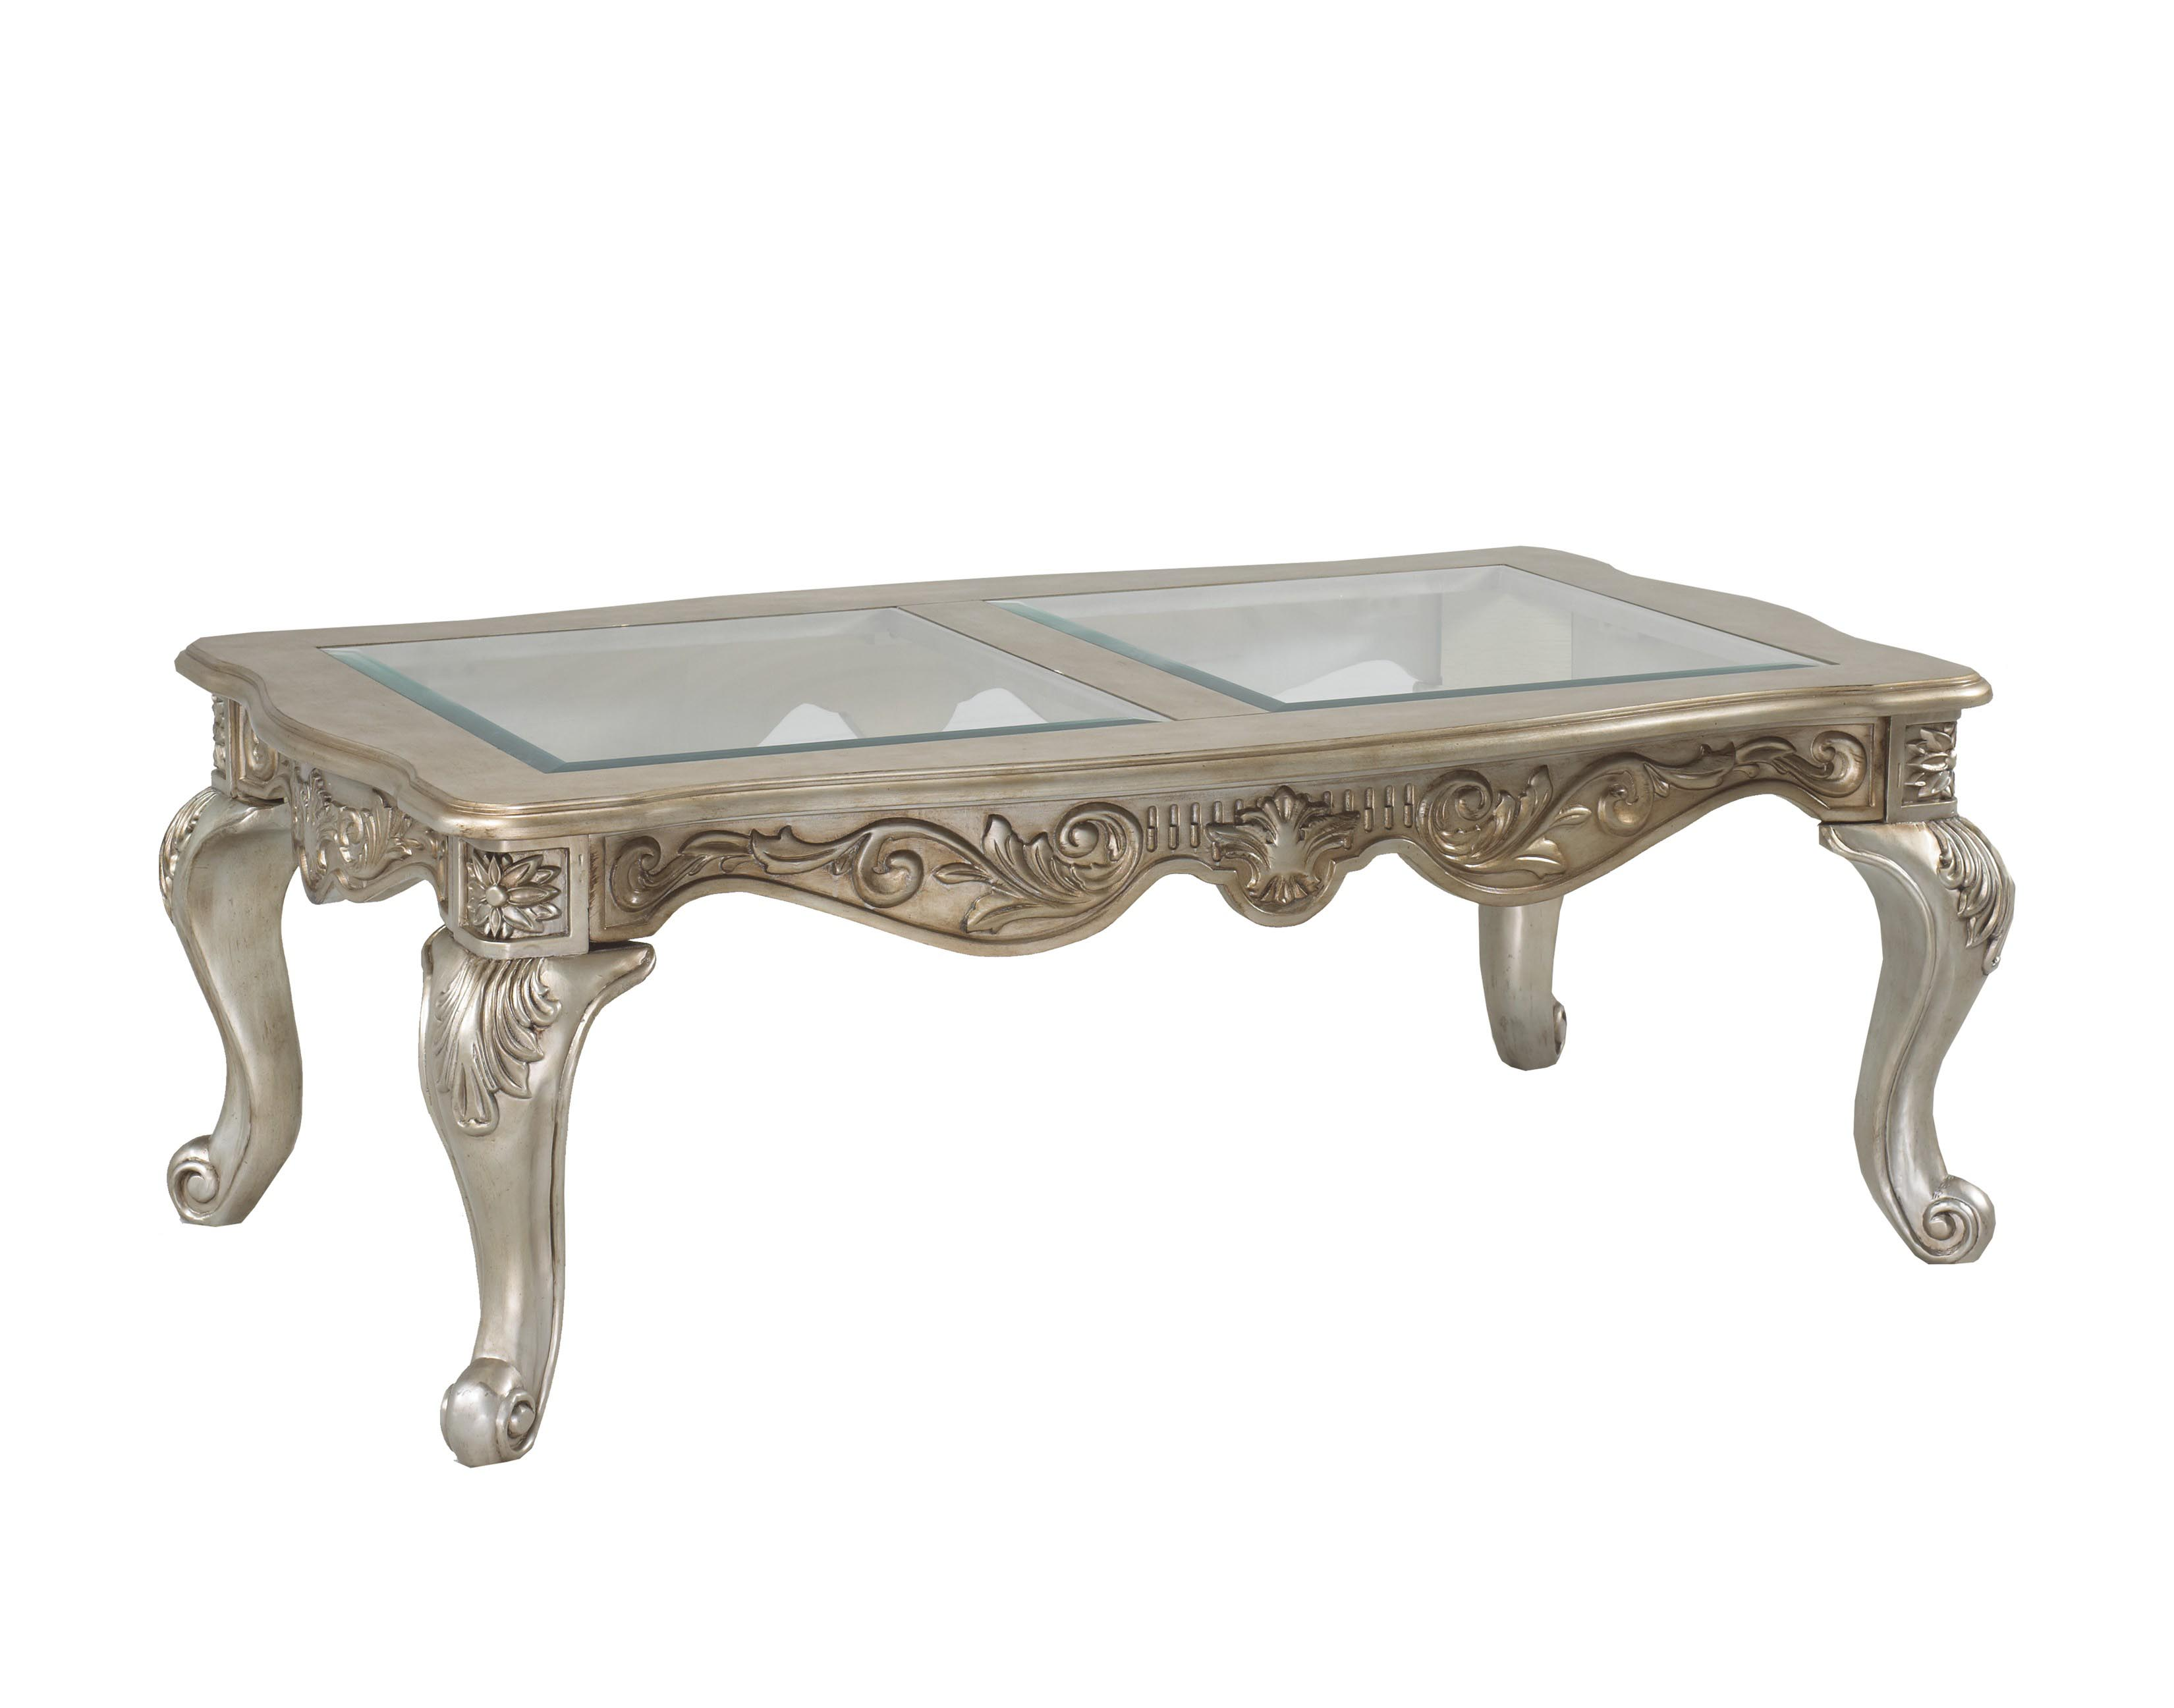 antique silver coffee table coffee table design ideas. Black Bedroom Furniture Sets. Home Design Ideas